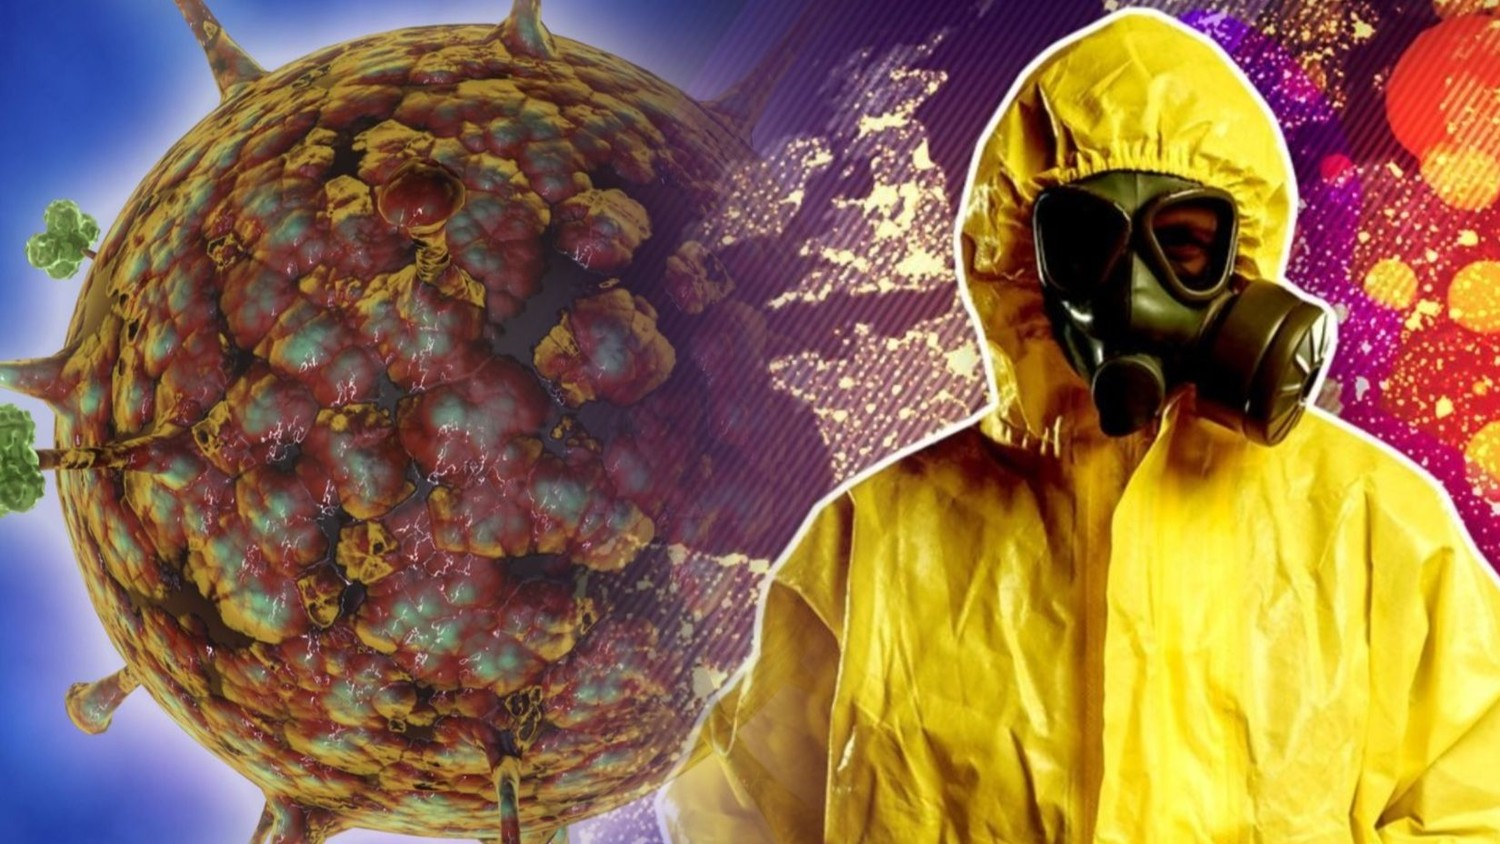 American scientists warned of a new pandemic more dangerous than COVID 19